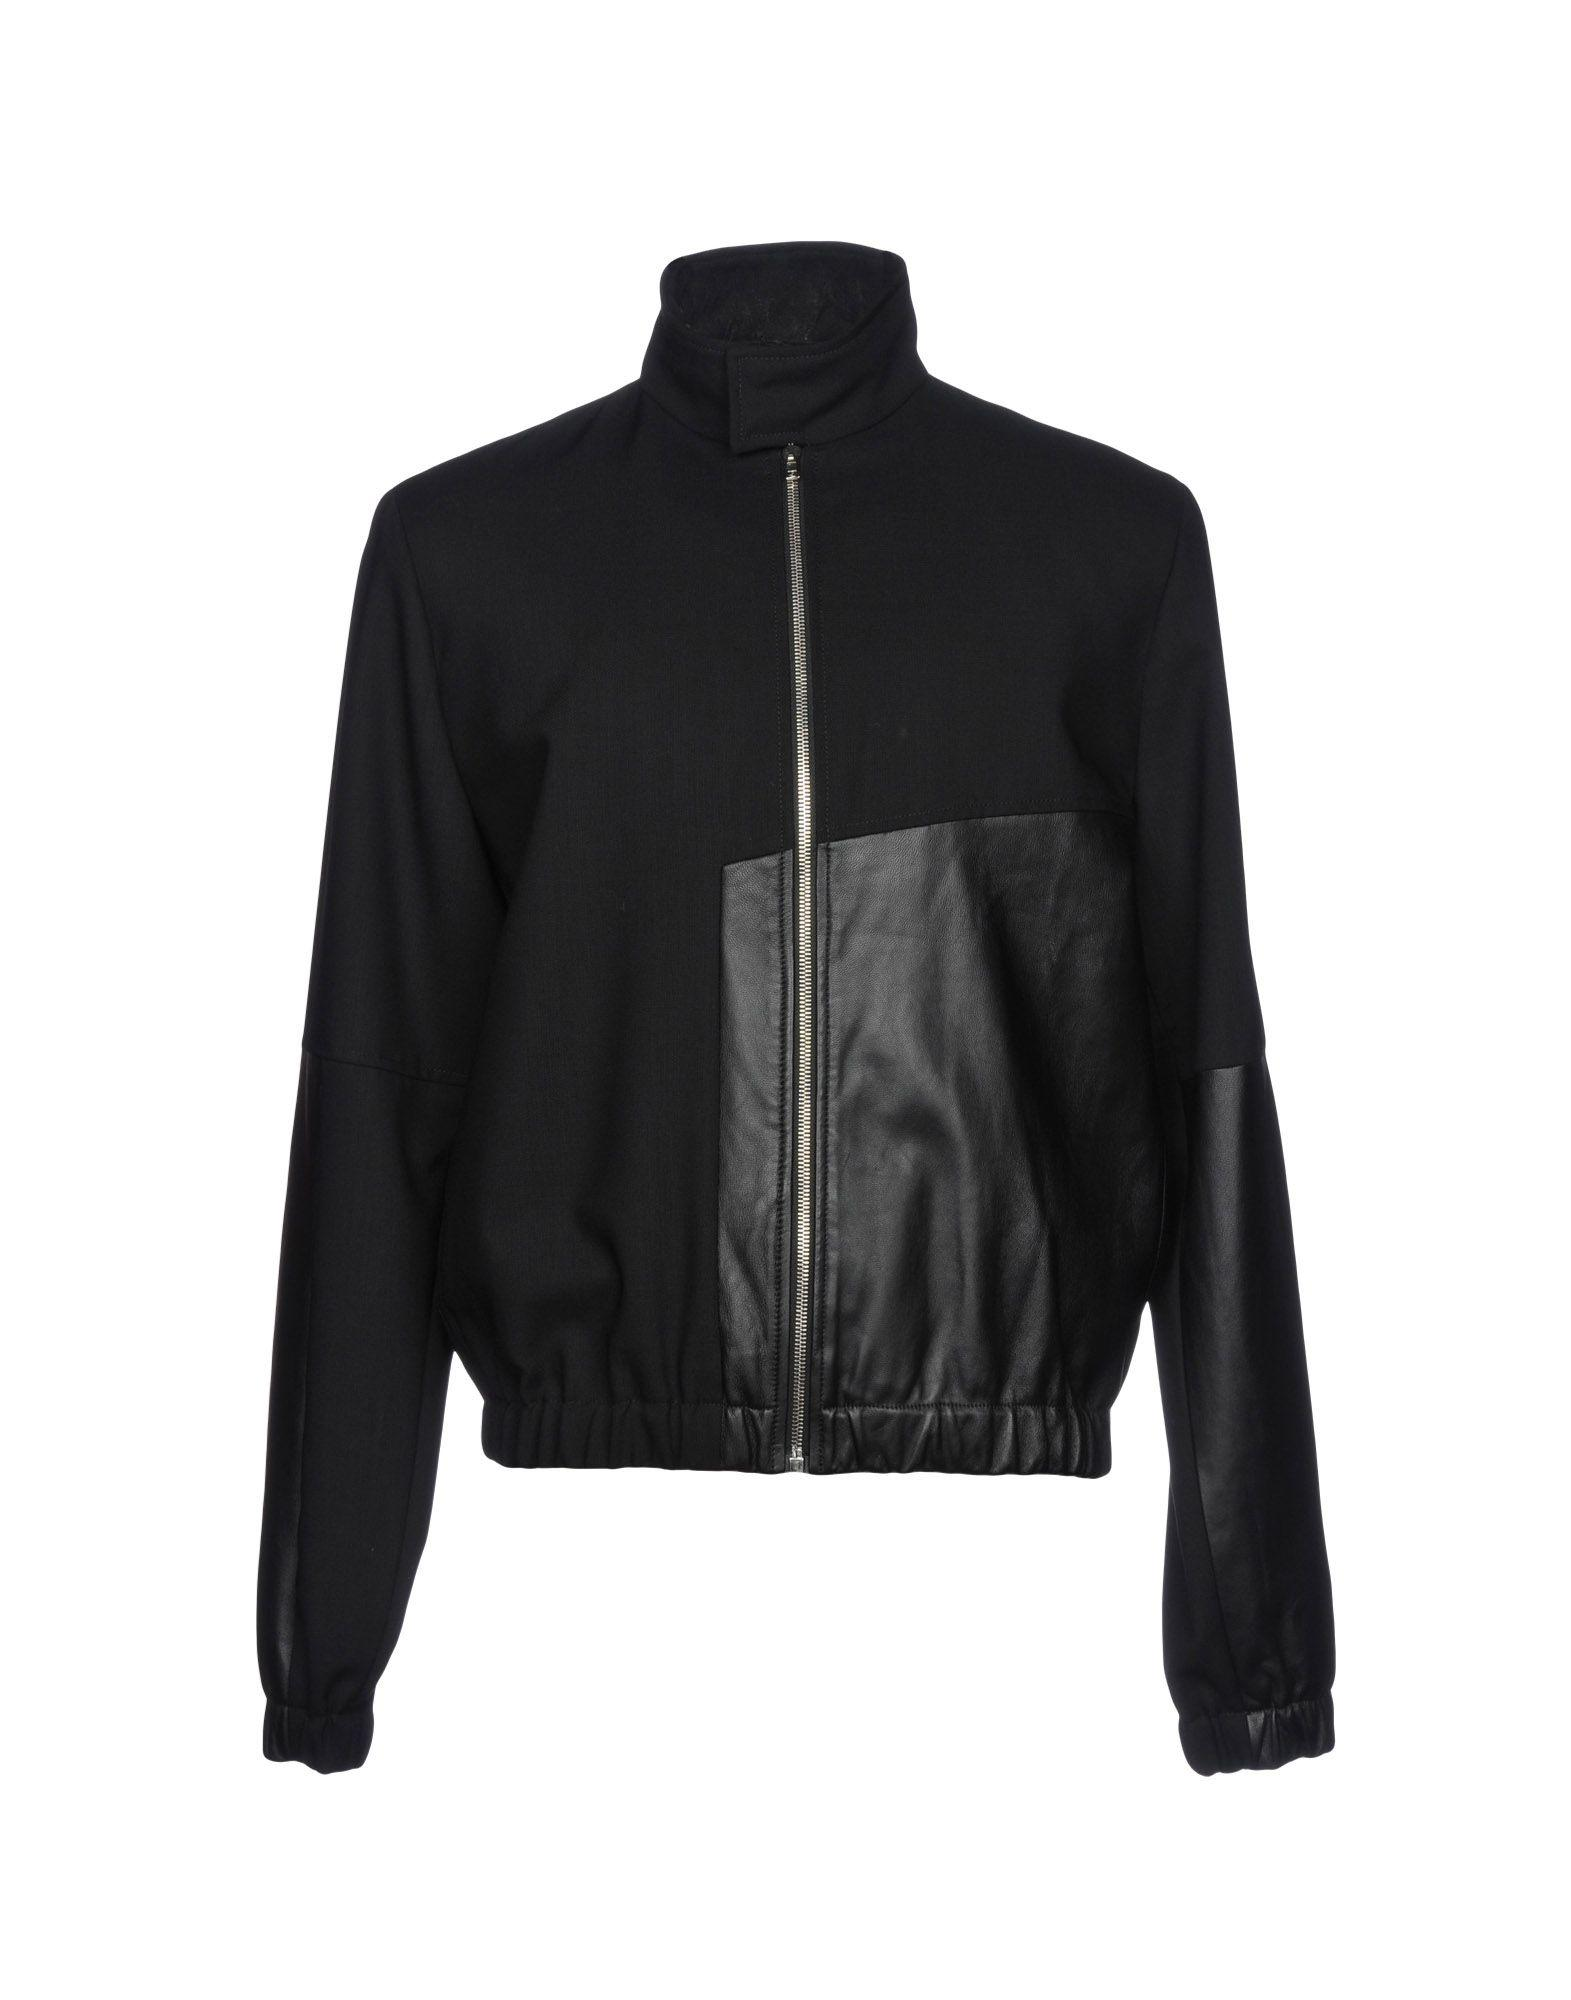 Mcq By Alexander Mcqueen Jackets In Black